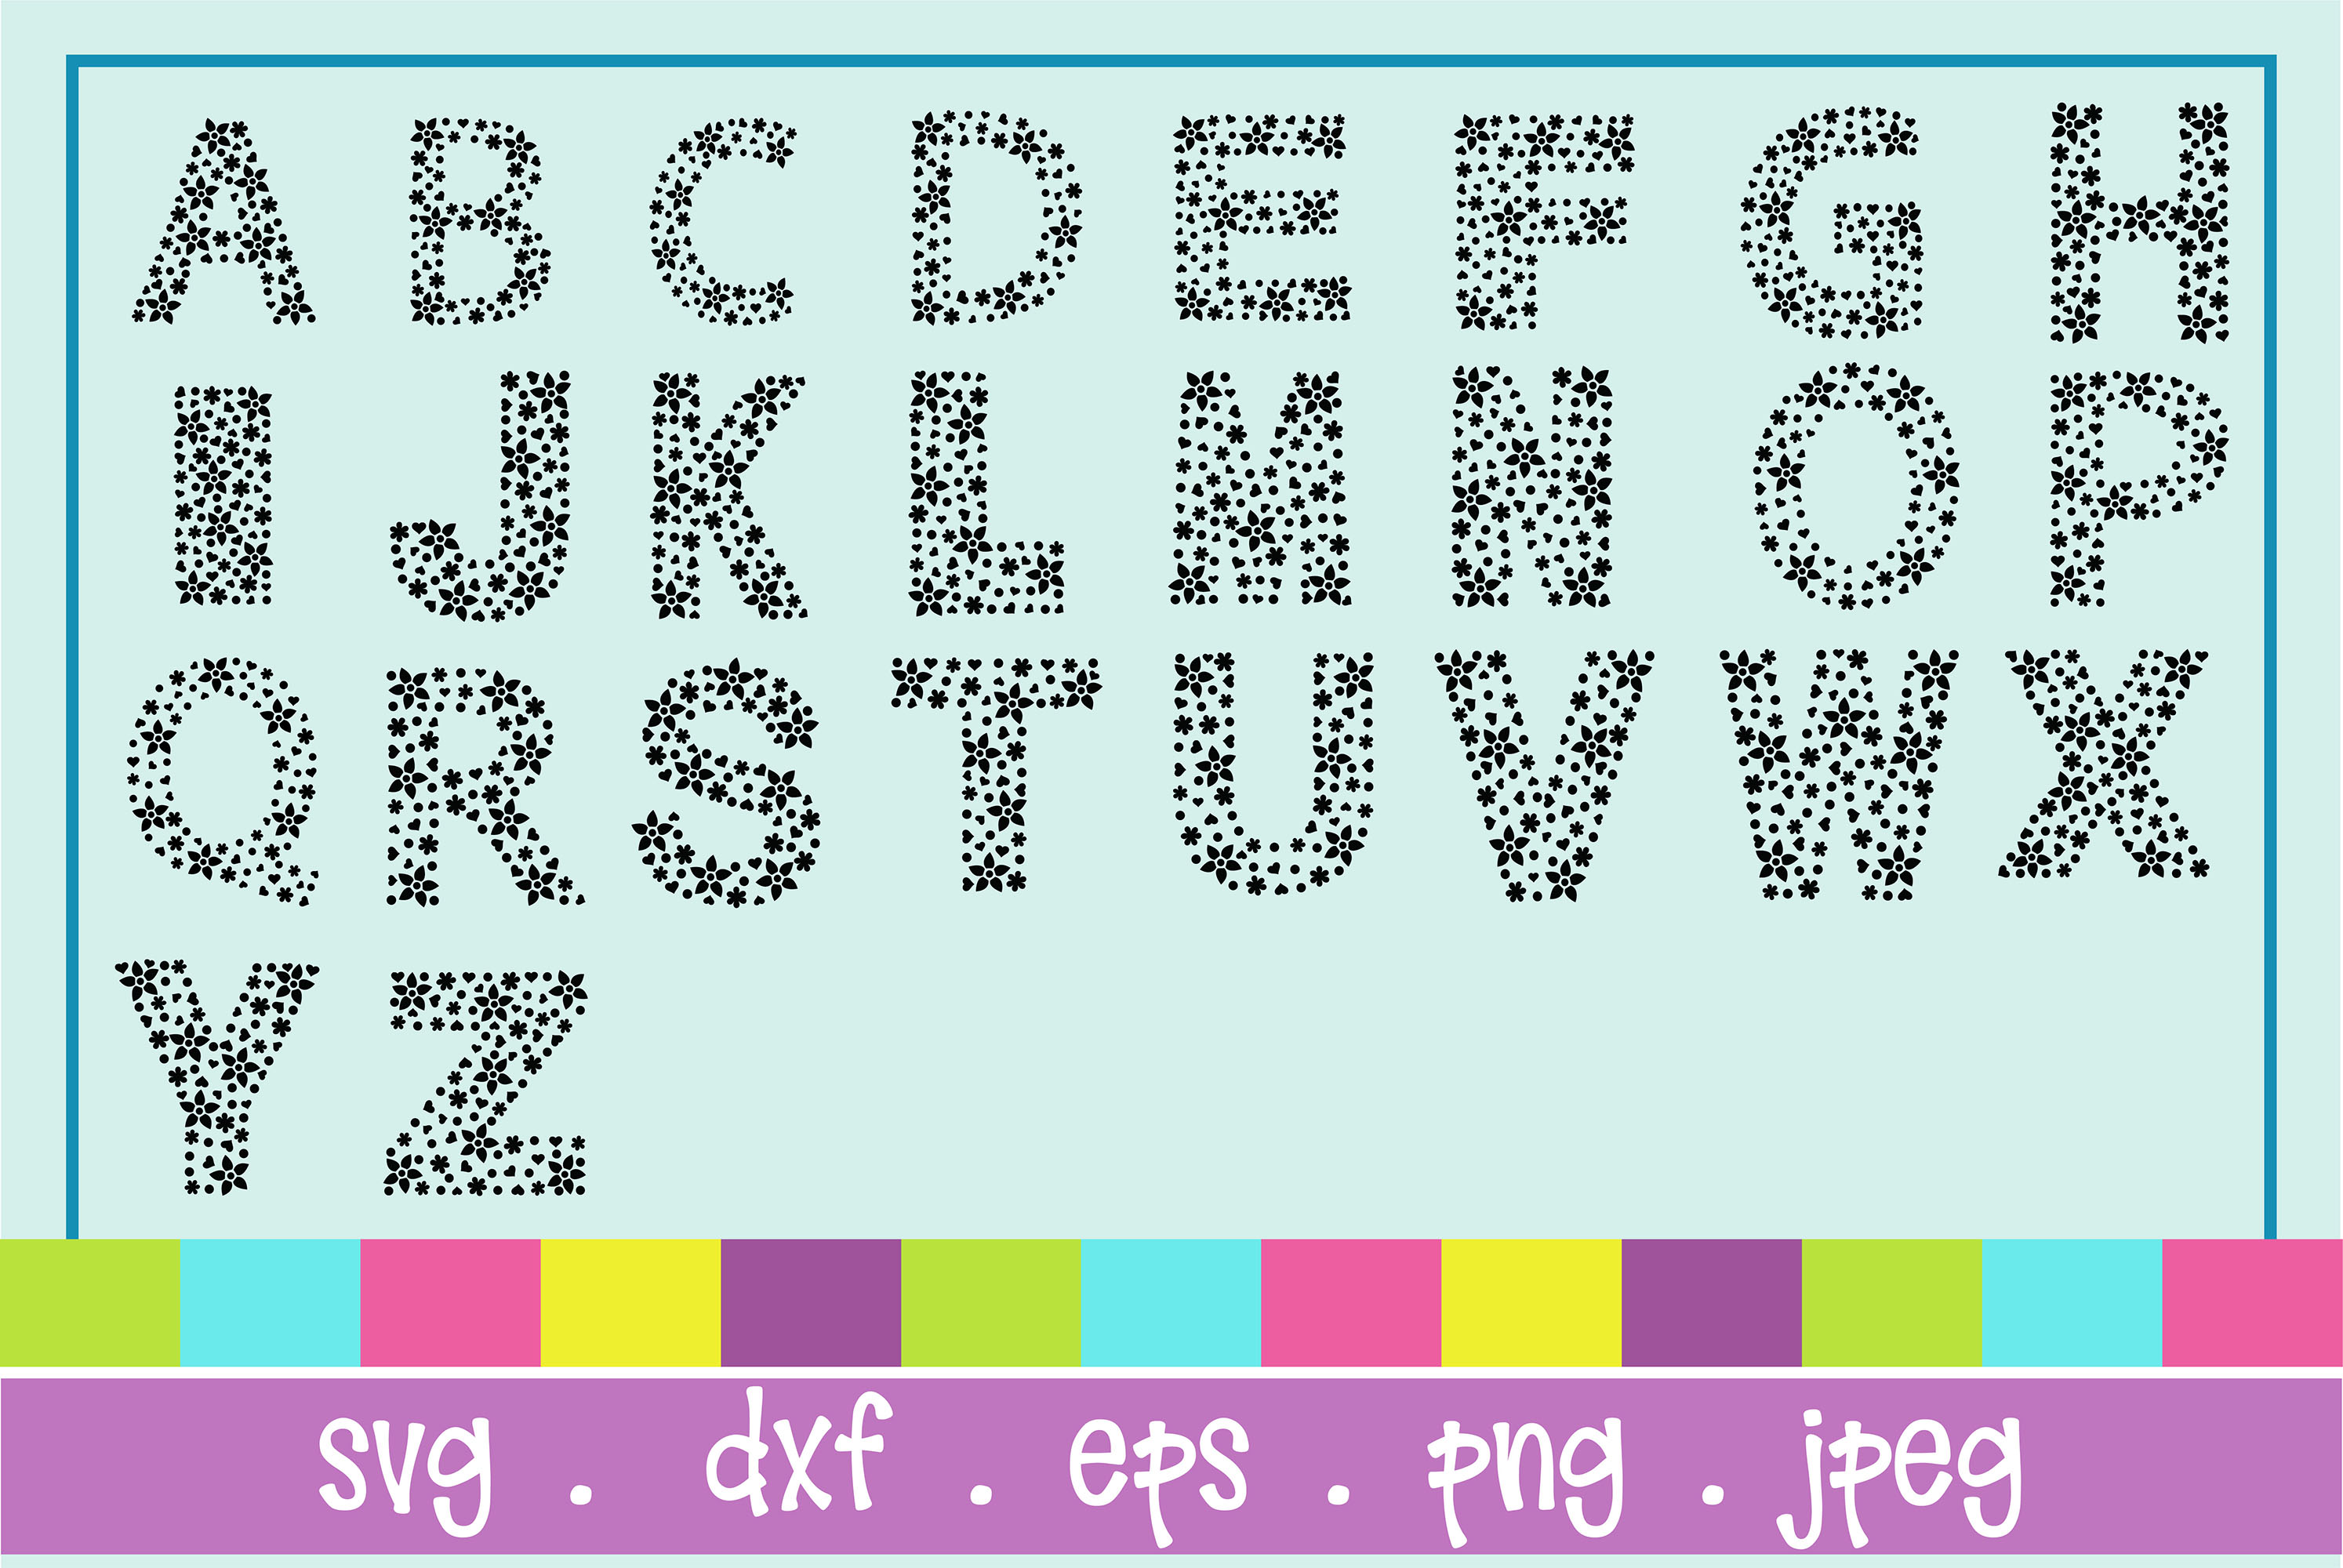 The Huge SVG Bundle Vol 2, 500 Cutting files, SVG, DXF,PNG example image 22